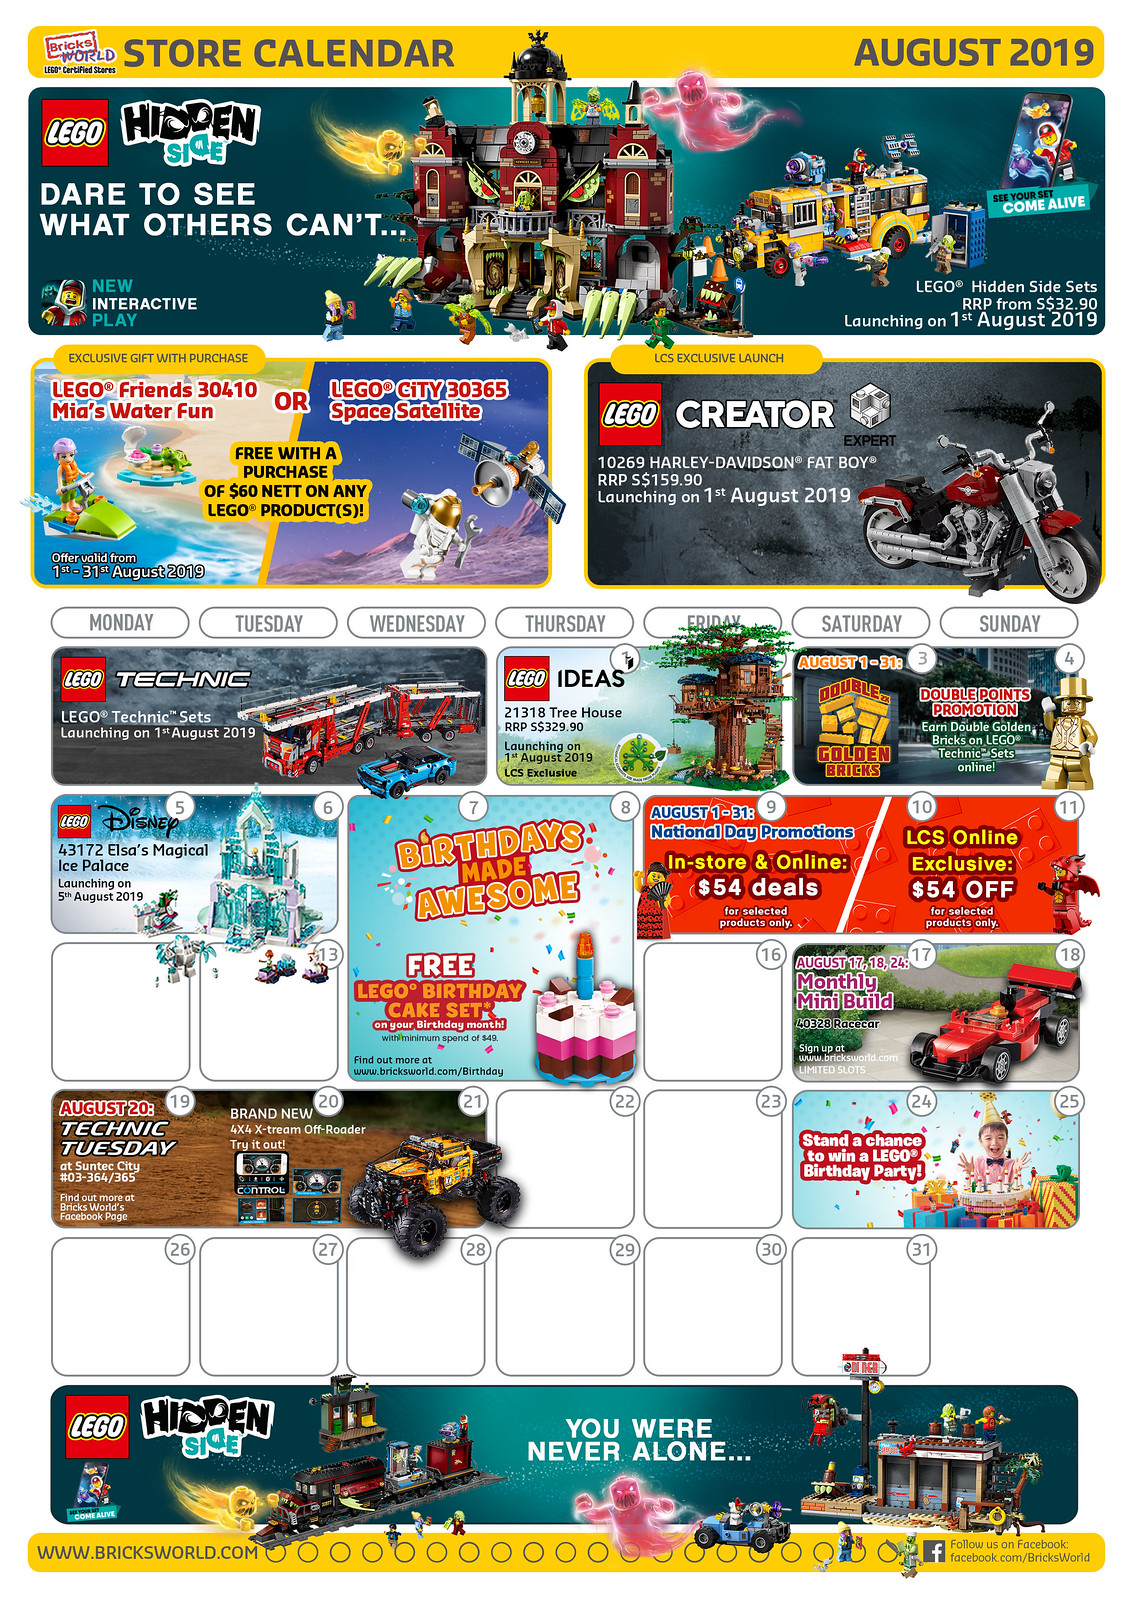 LEGO Certified Store Calendar August 2019 - Front